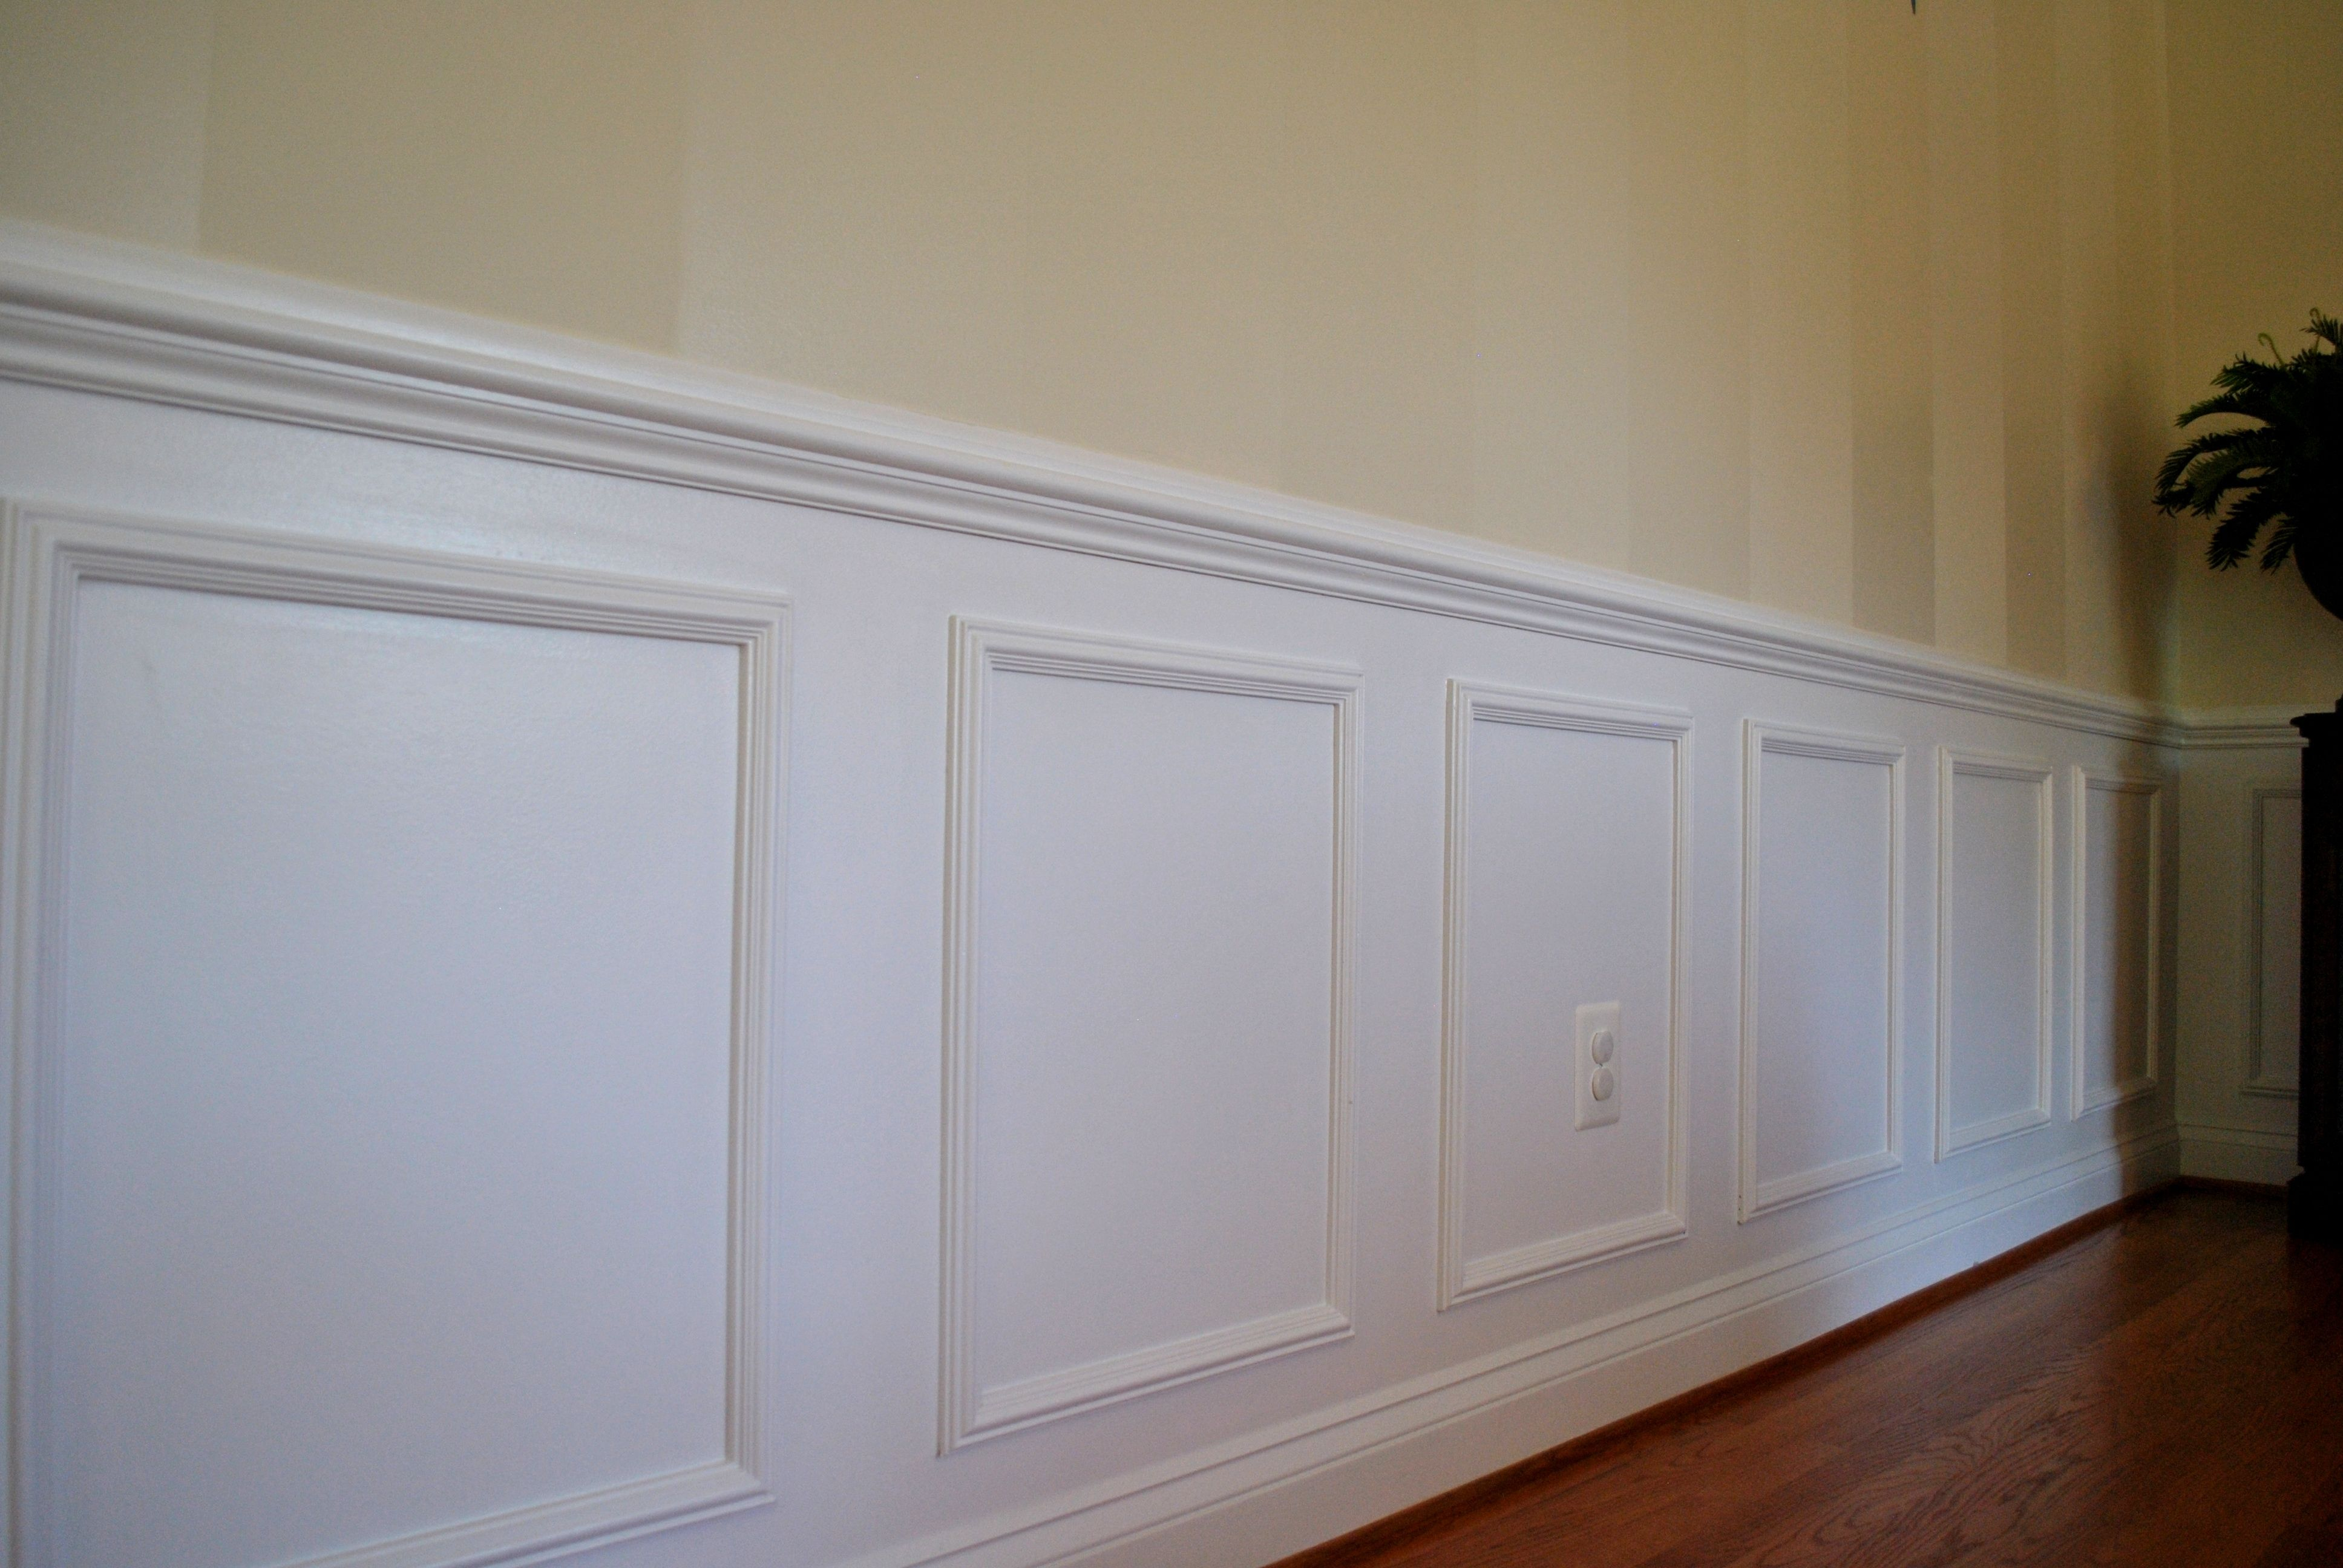 Diy pre made shadow box moulding panels decor for Dining room molding panels